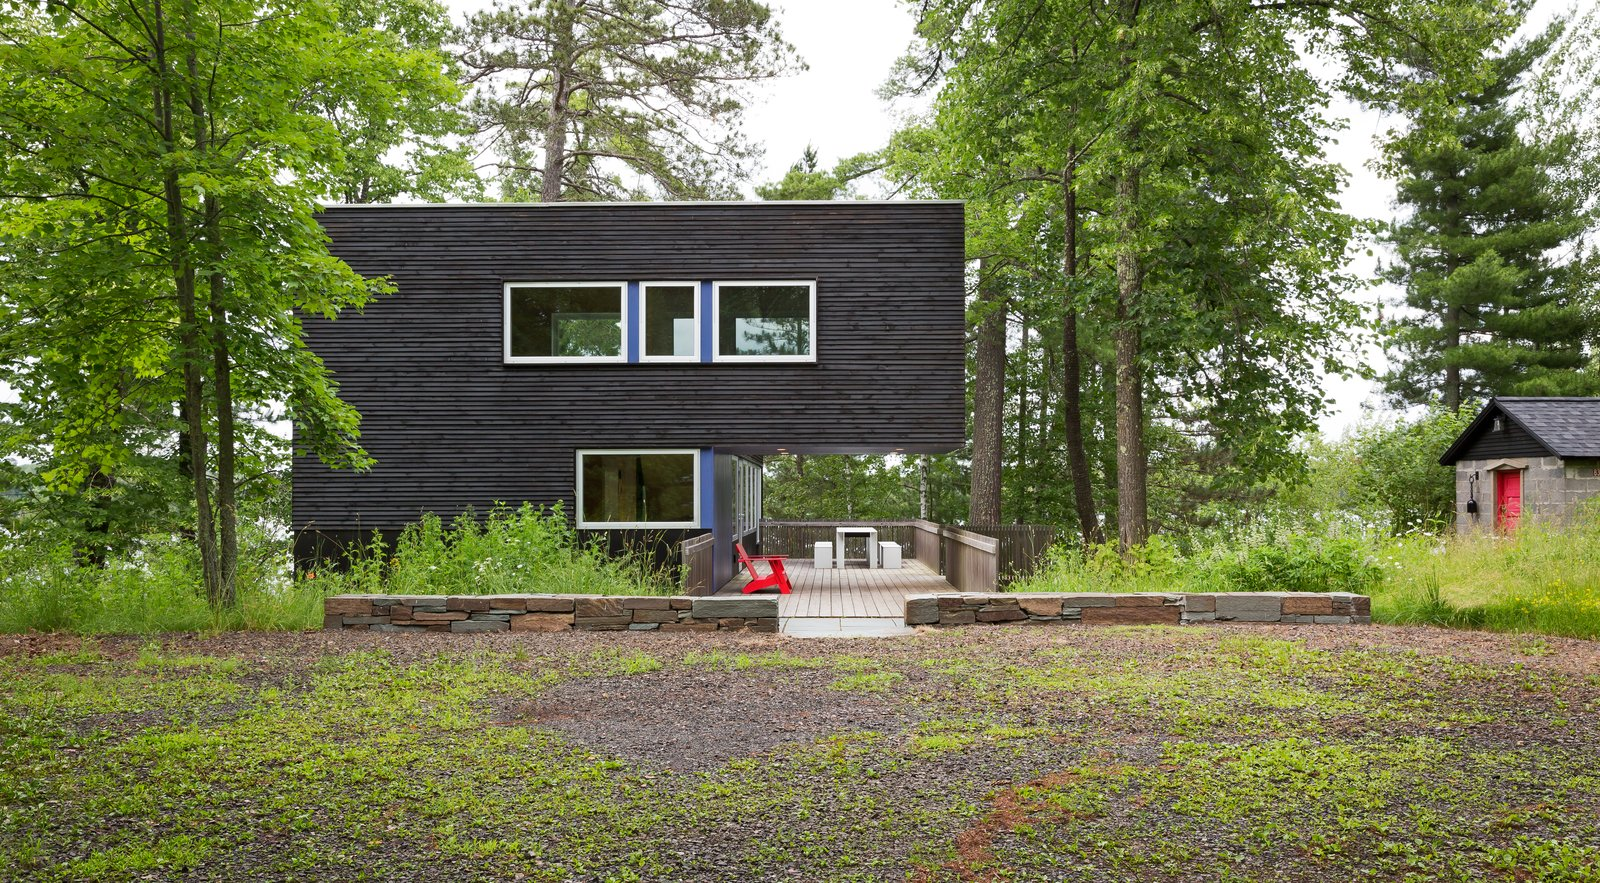 Two Rectangular Volumes Unite to Form a Colorful Lakeside Cabin